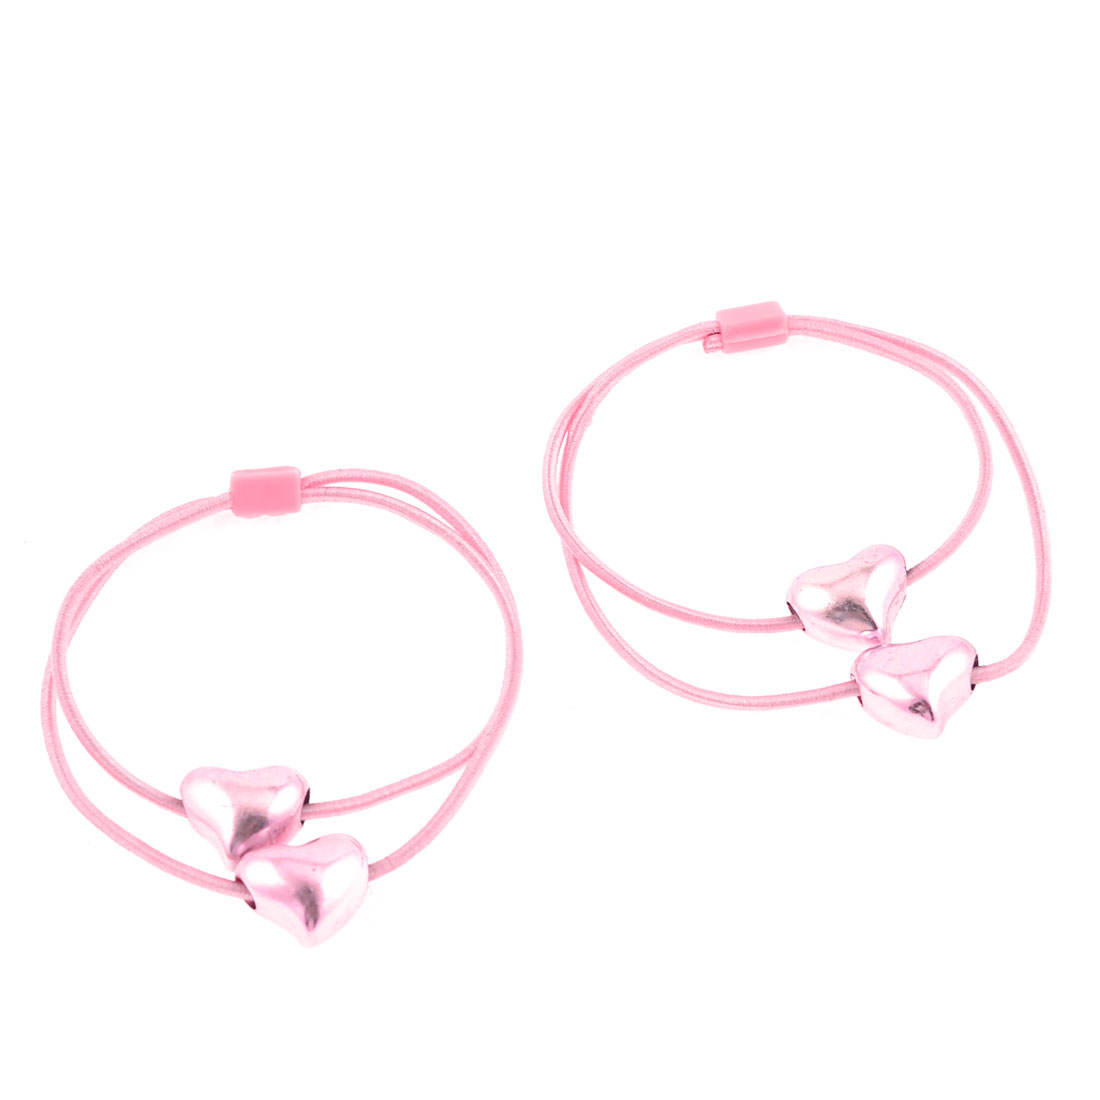 Light Pink Glisten Heart Beads Decorated Flexible Hair Tie Ponytail Holder Pair